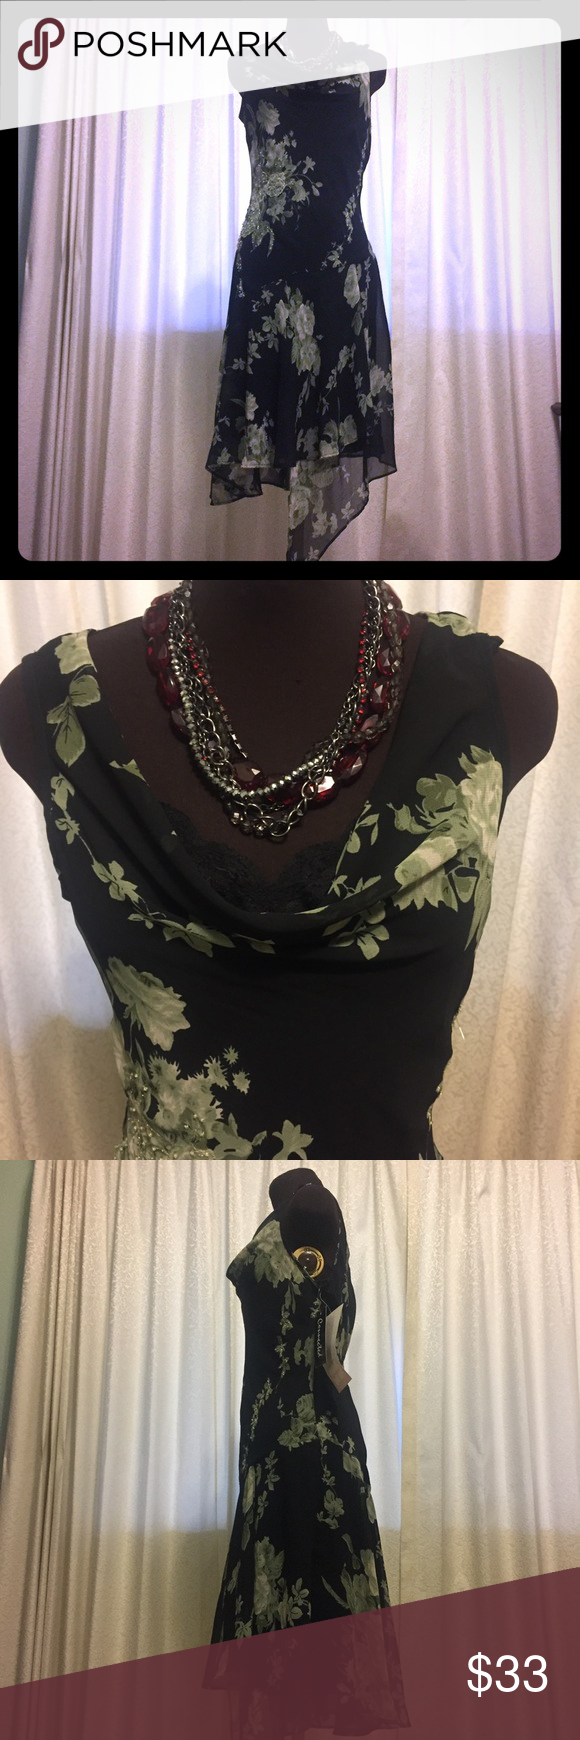 Sleeveless Floral & Pearl Embossed Shear Dress NWT: Shear Black Sleeveless dress with floral pattern, pearls and metallic threading for accent. Full lines with slip dress that has lace accents at the bust to add that extra feminine touch. Beautiful day or night. Material is 100.% polyester.   Size Medium Connection Dresses Maxi